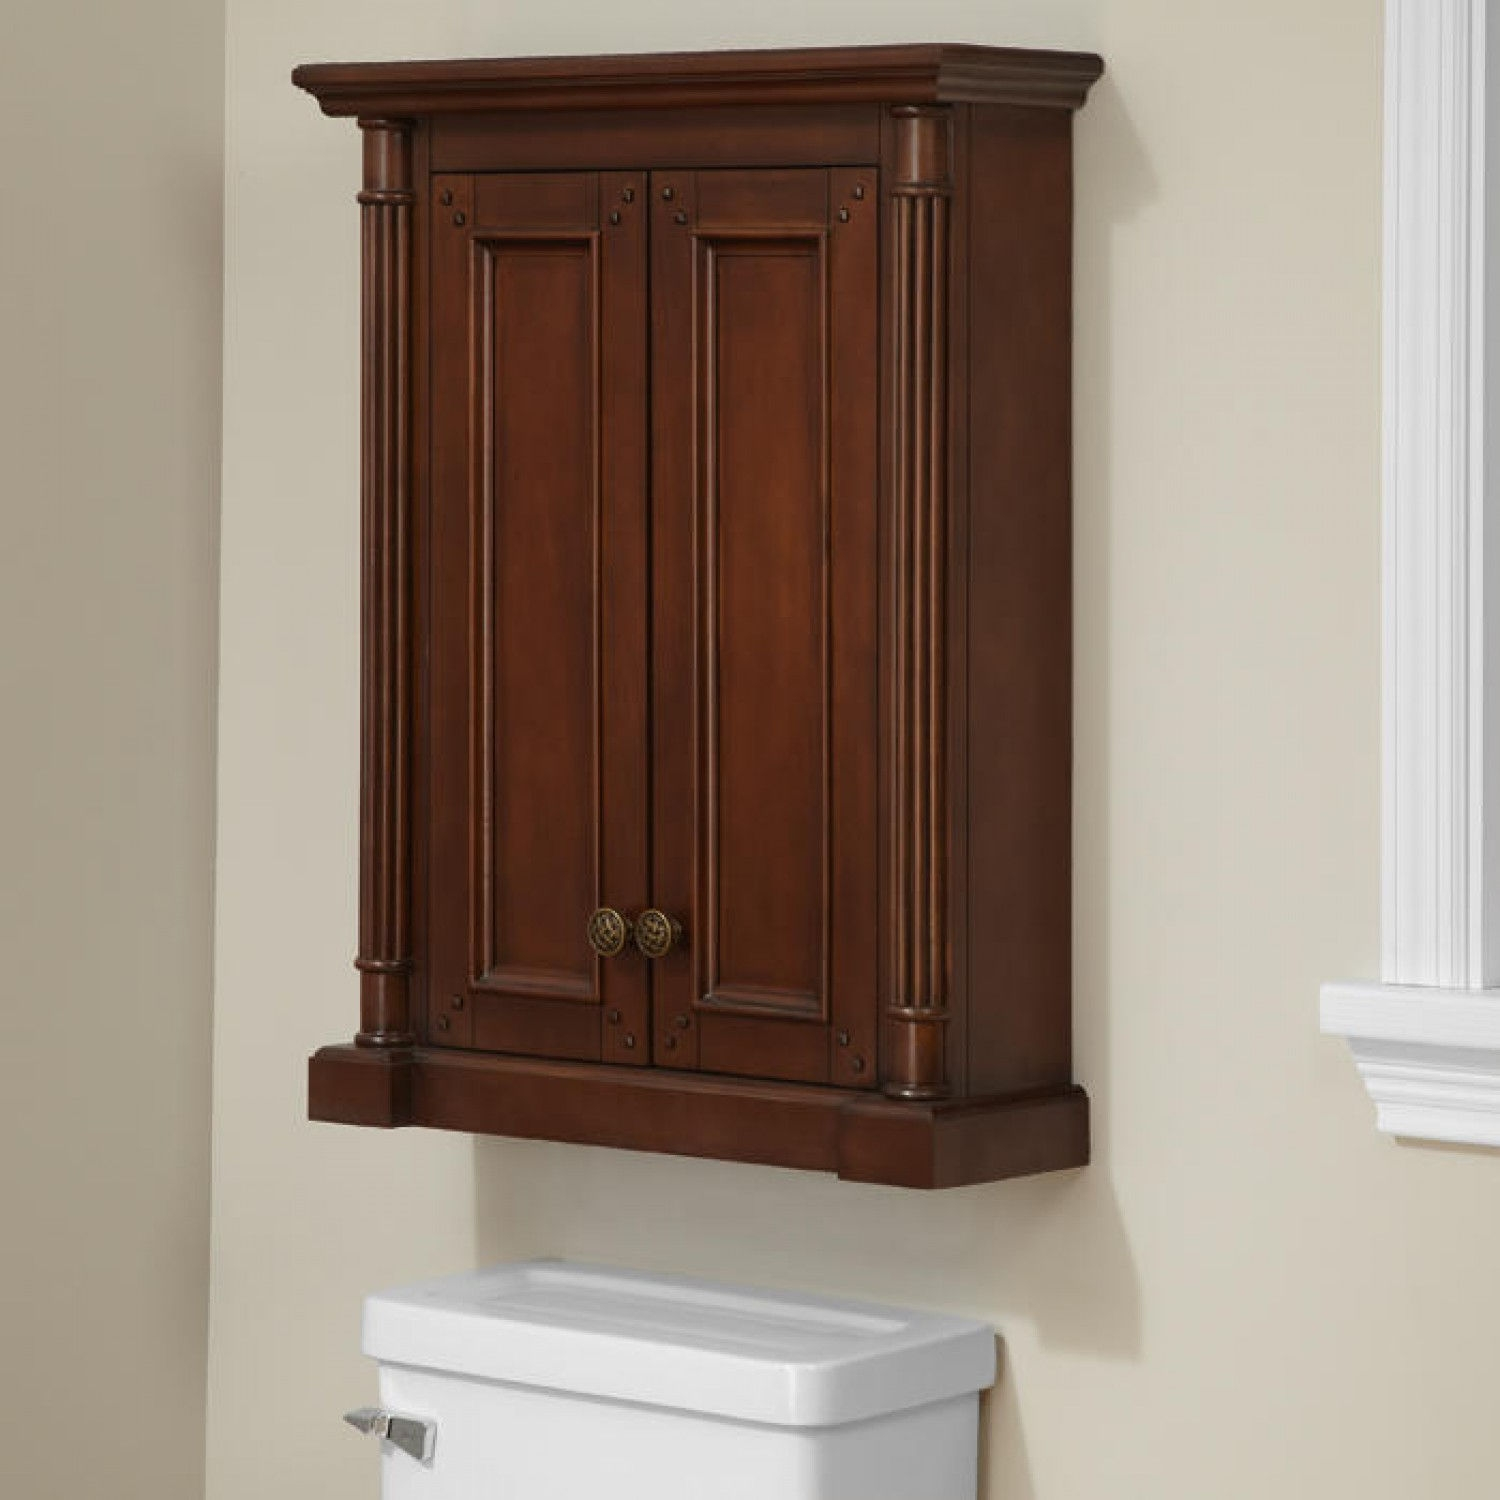 Recessed Bathroom Medicine Cabinets Wood